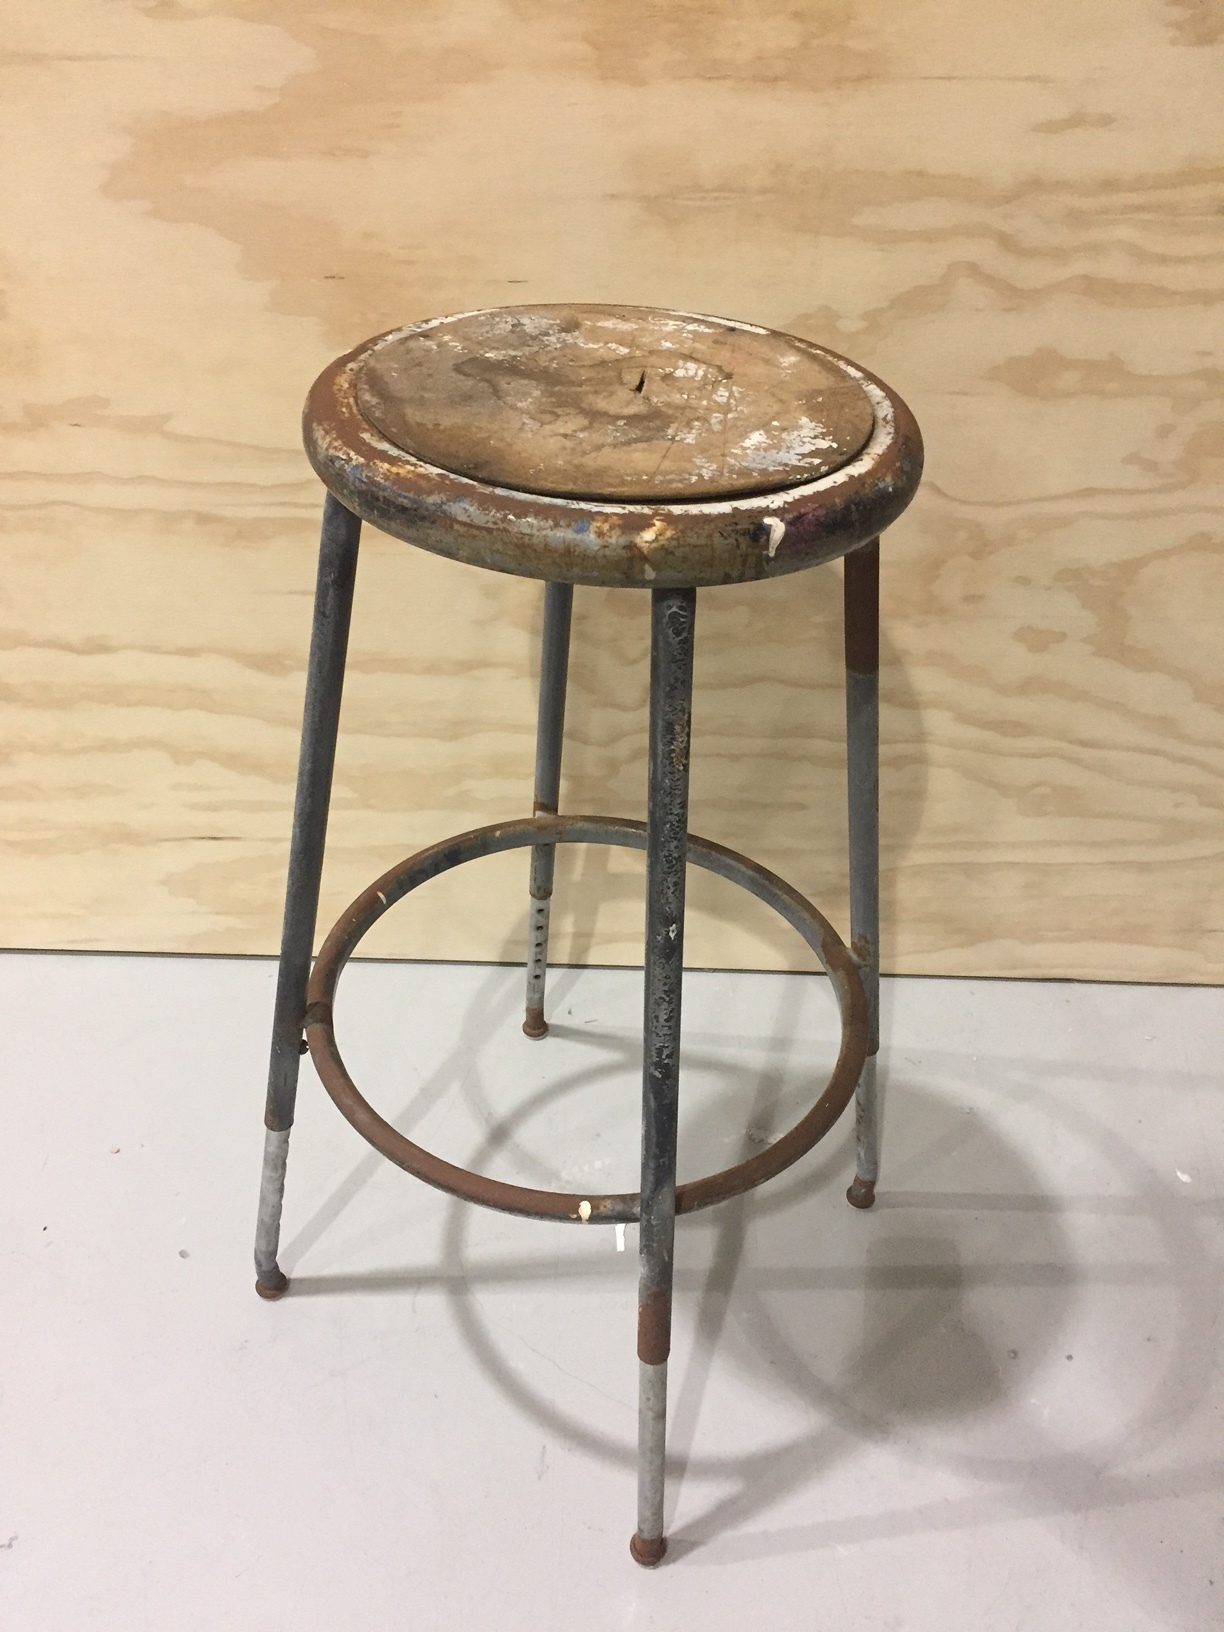 RSS Old Painter'S Stool $50